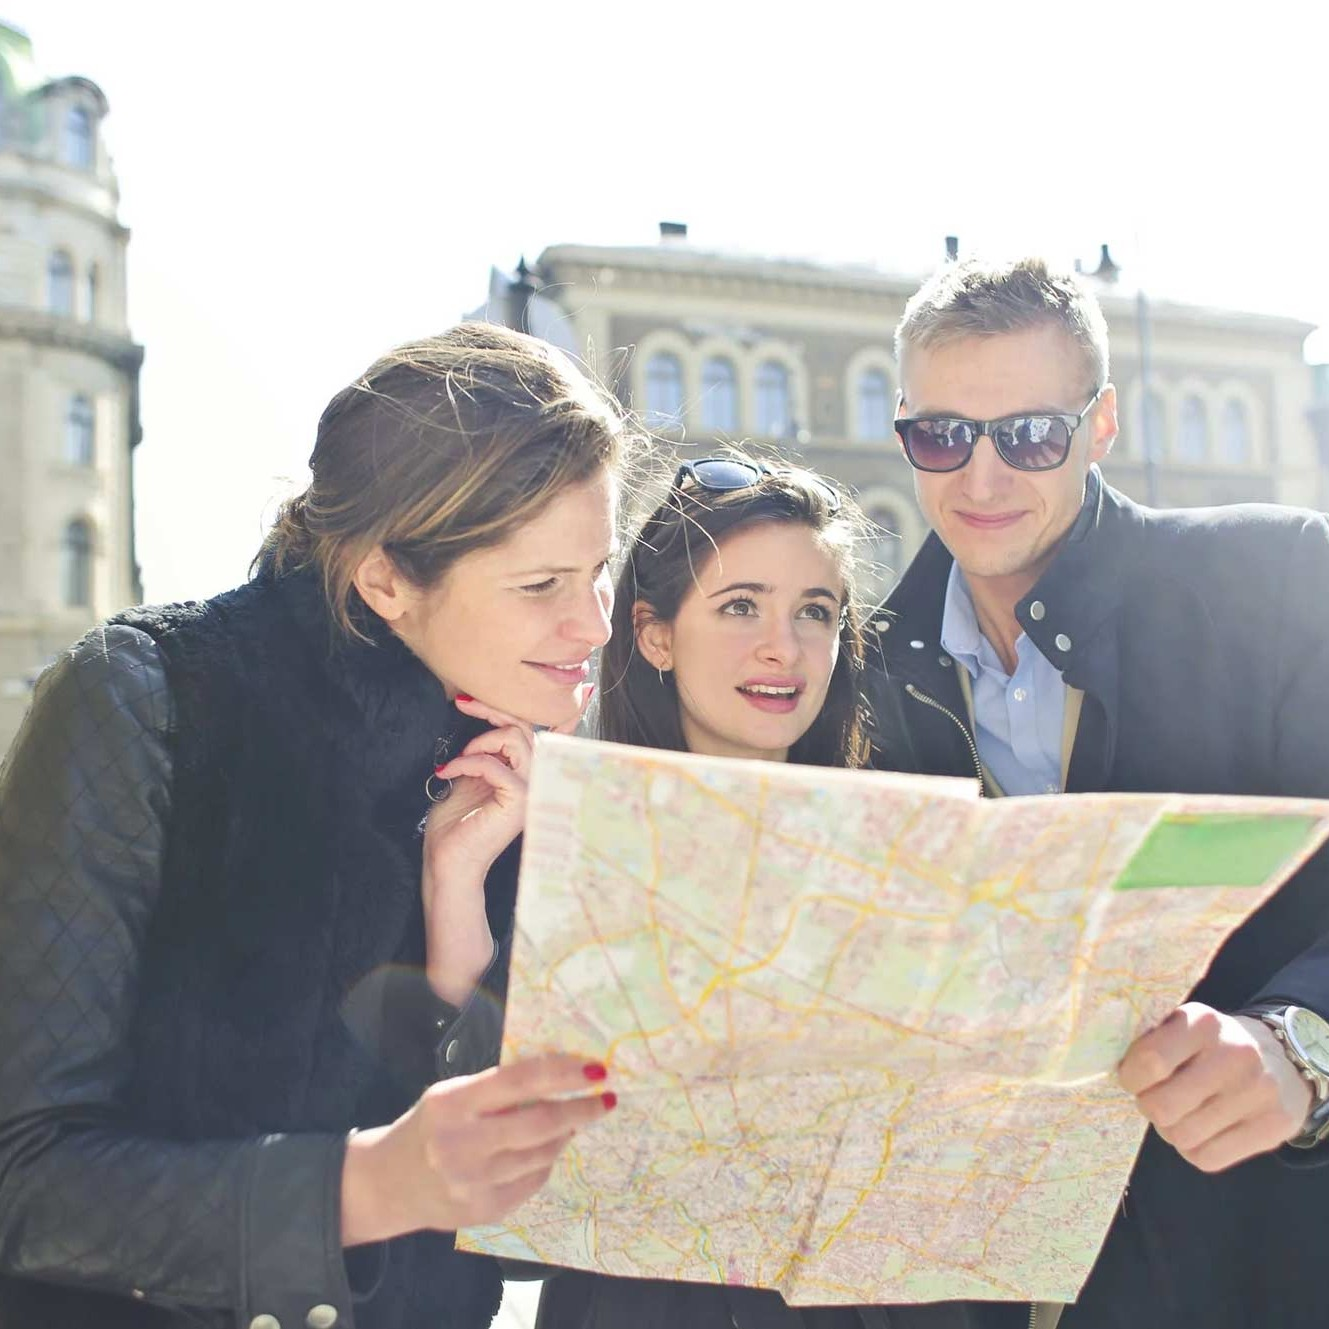 A travel guide for couples: 5 tips for working through holiday difficulties